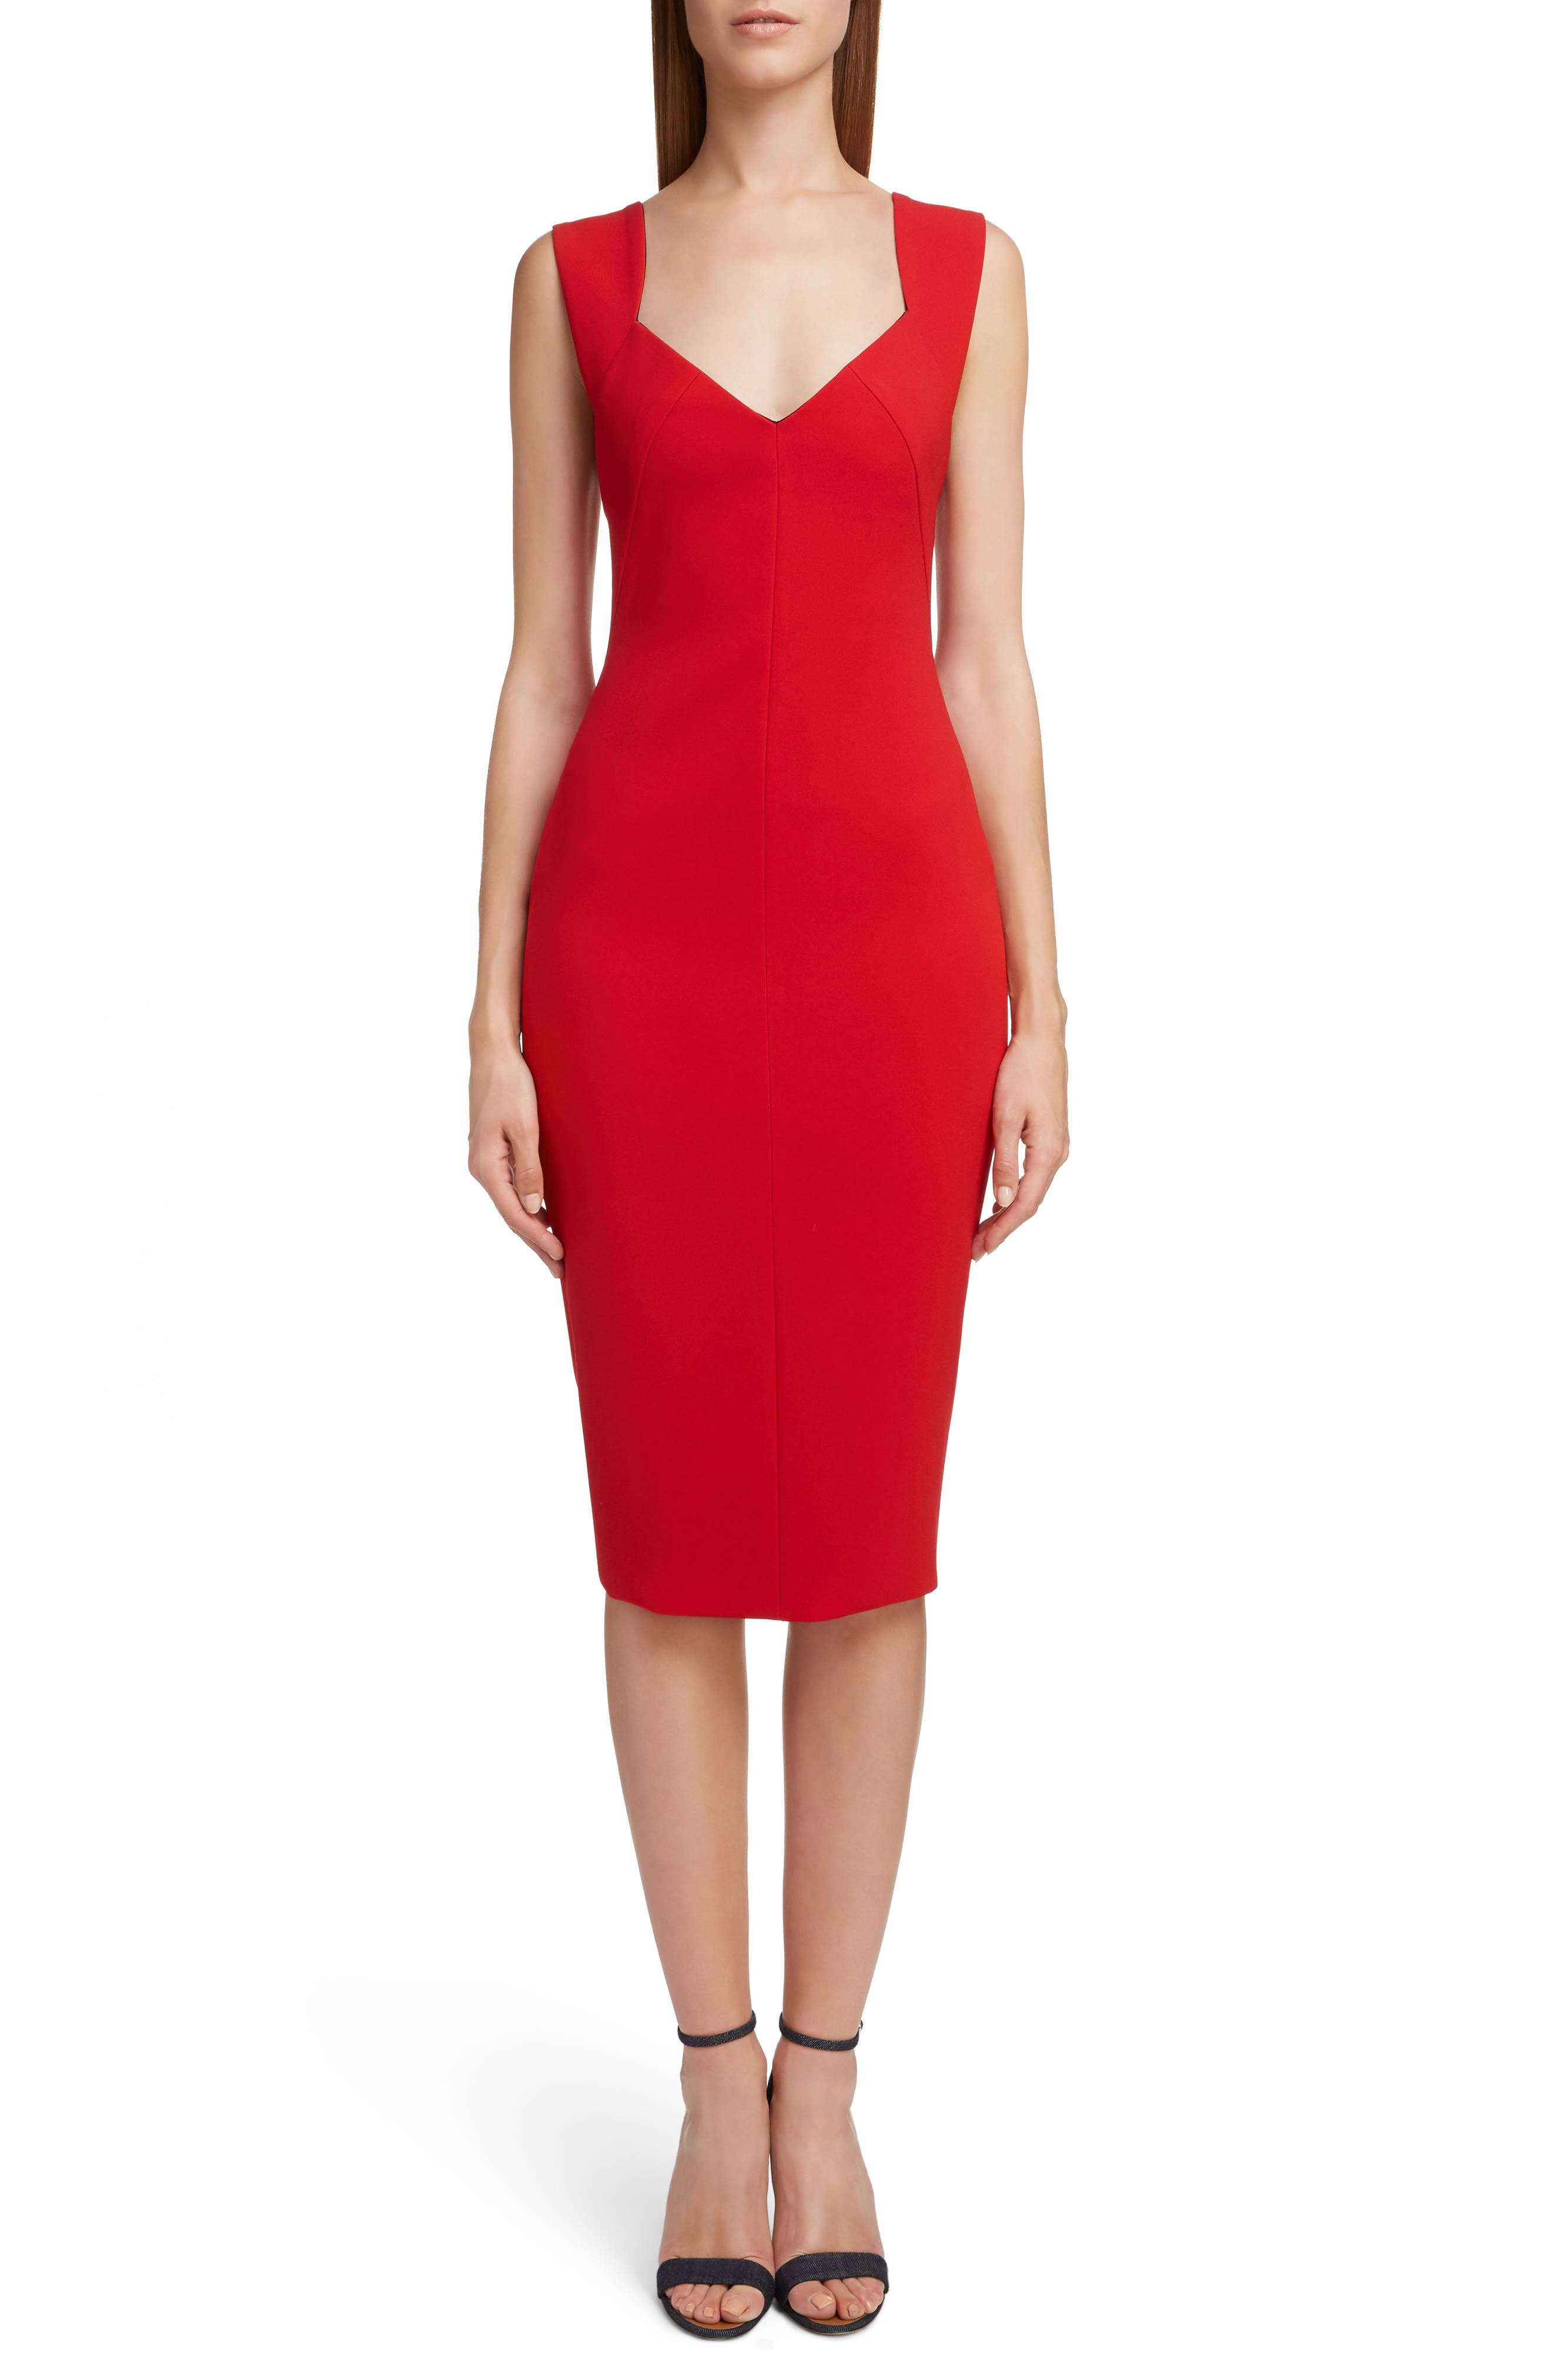 Victoria Beckham Sweetheart Neck Body-Con Dress, US / 14 UK - Red